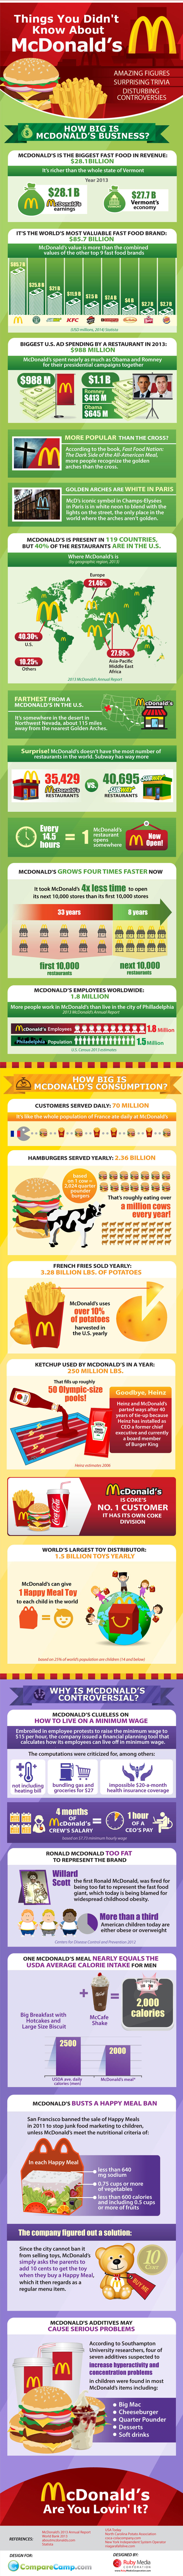 Super-Size Facts about McDonald's Fast Food Business Infographic